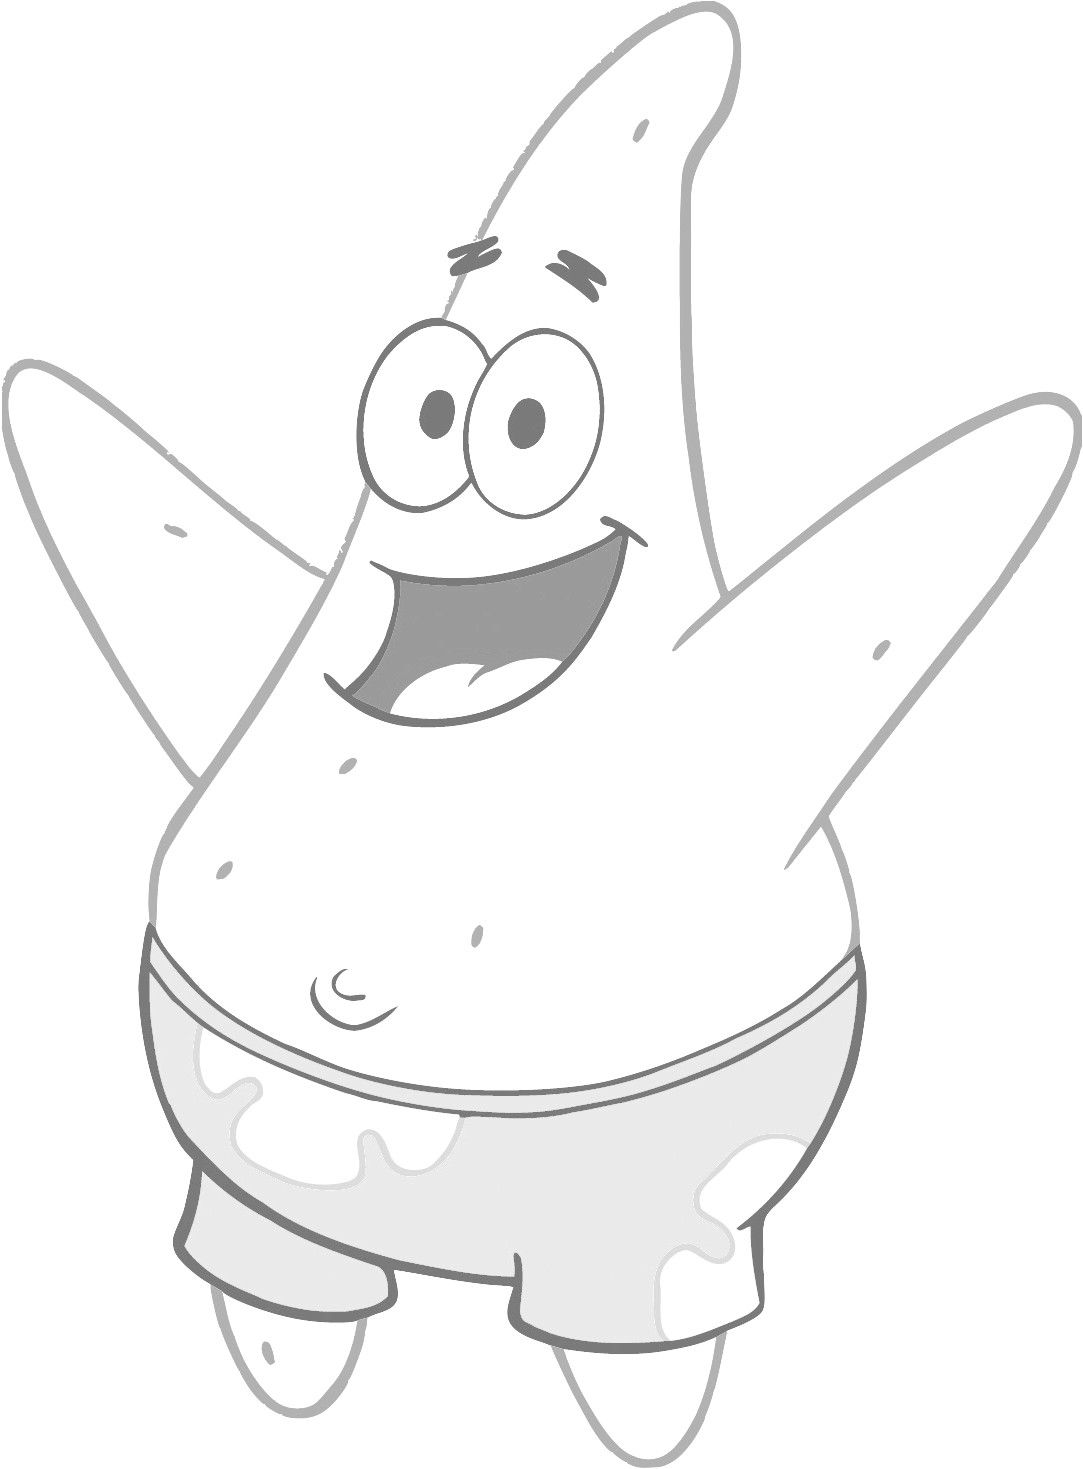 Spongebob Coloring Pages With No Dots